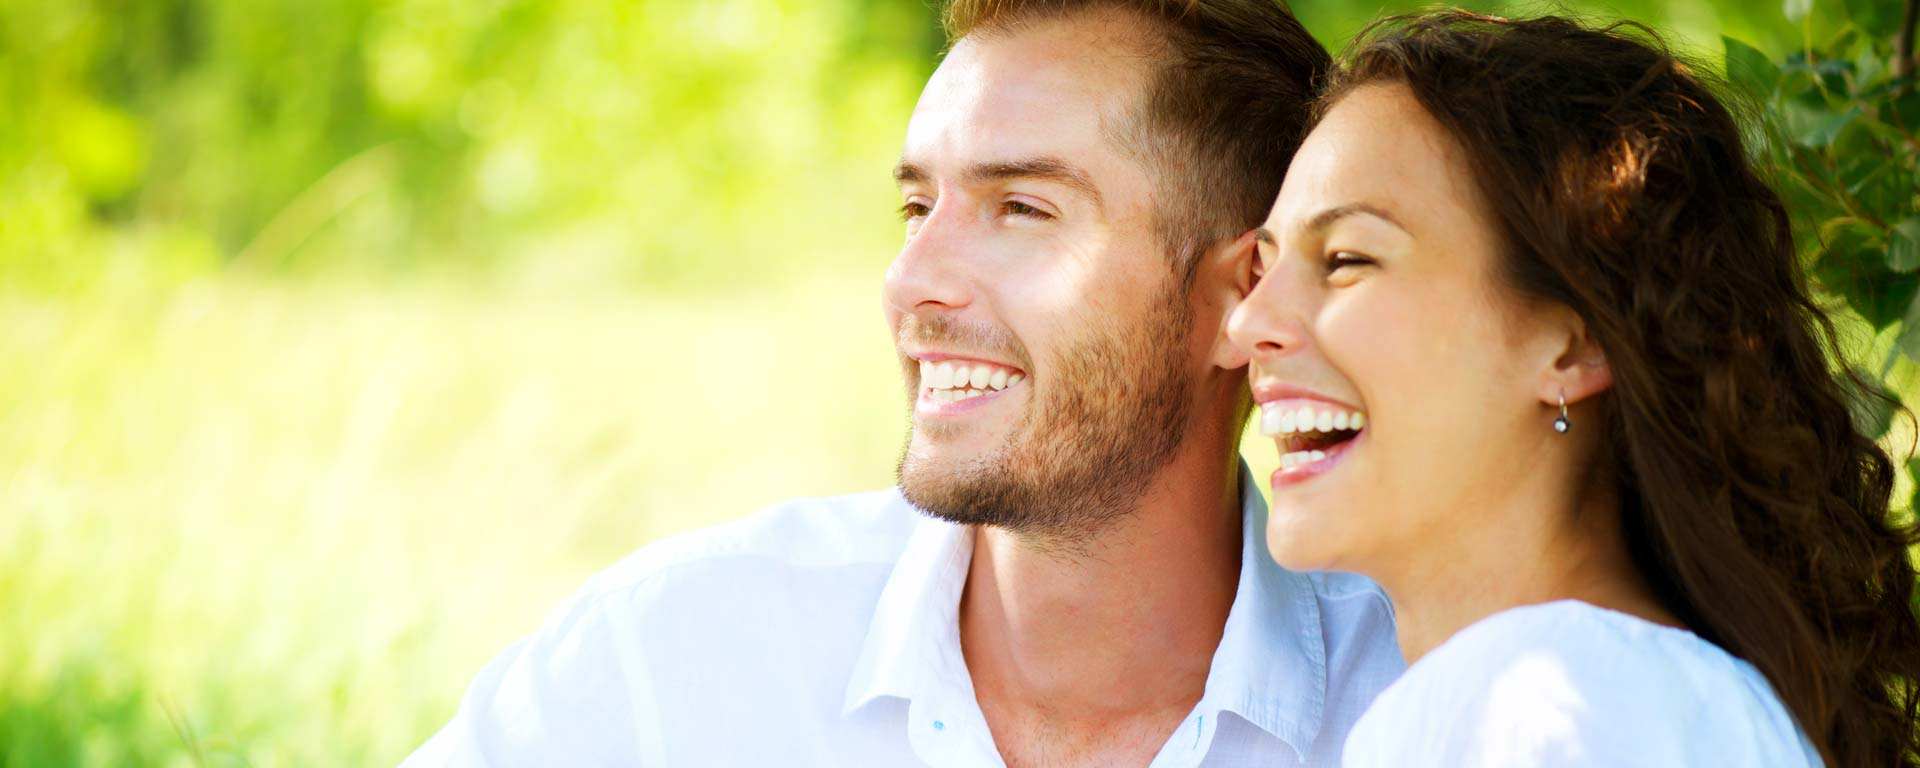 Start Better With HCF Dentist For Healthy Teeth And Gums For Your Family